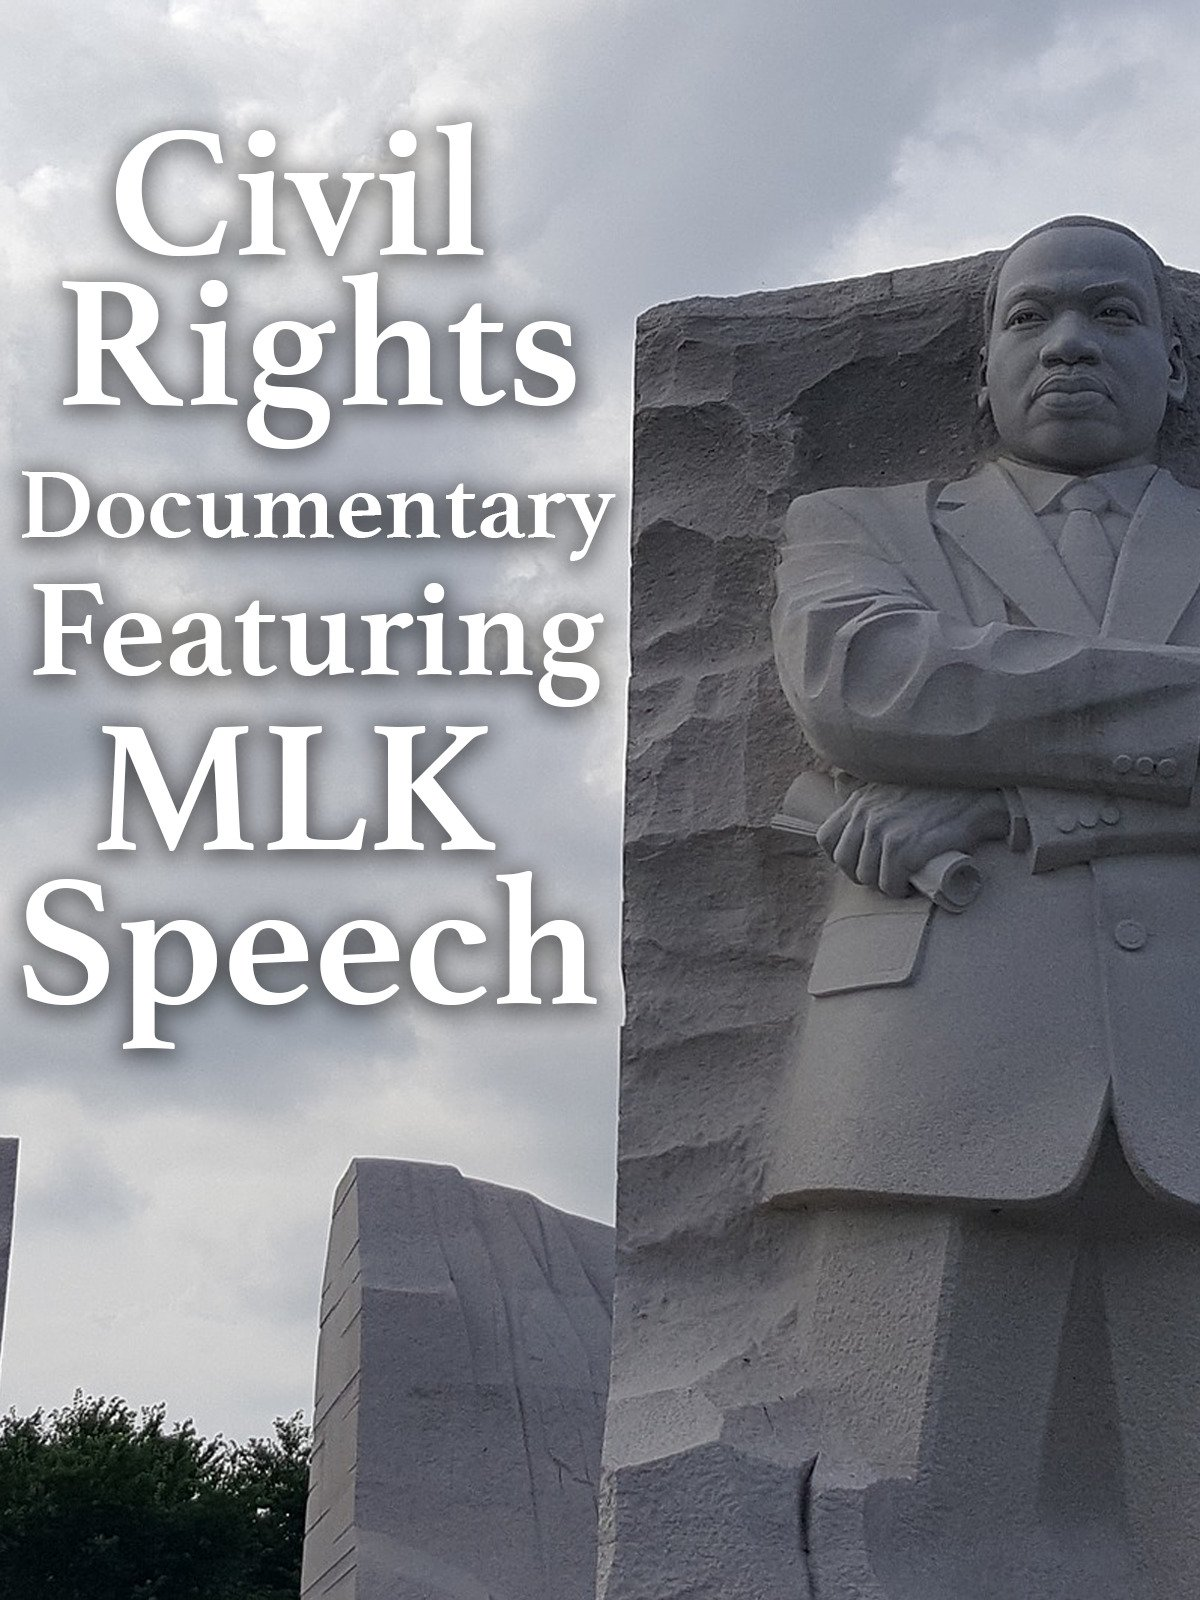 Civil Rights Documentary Featuring MLK Speech